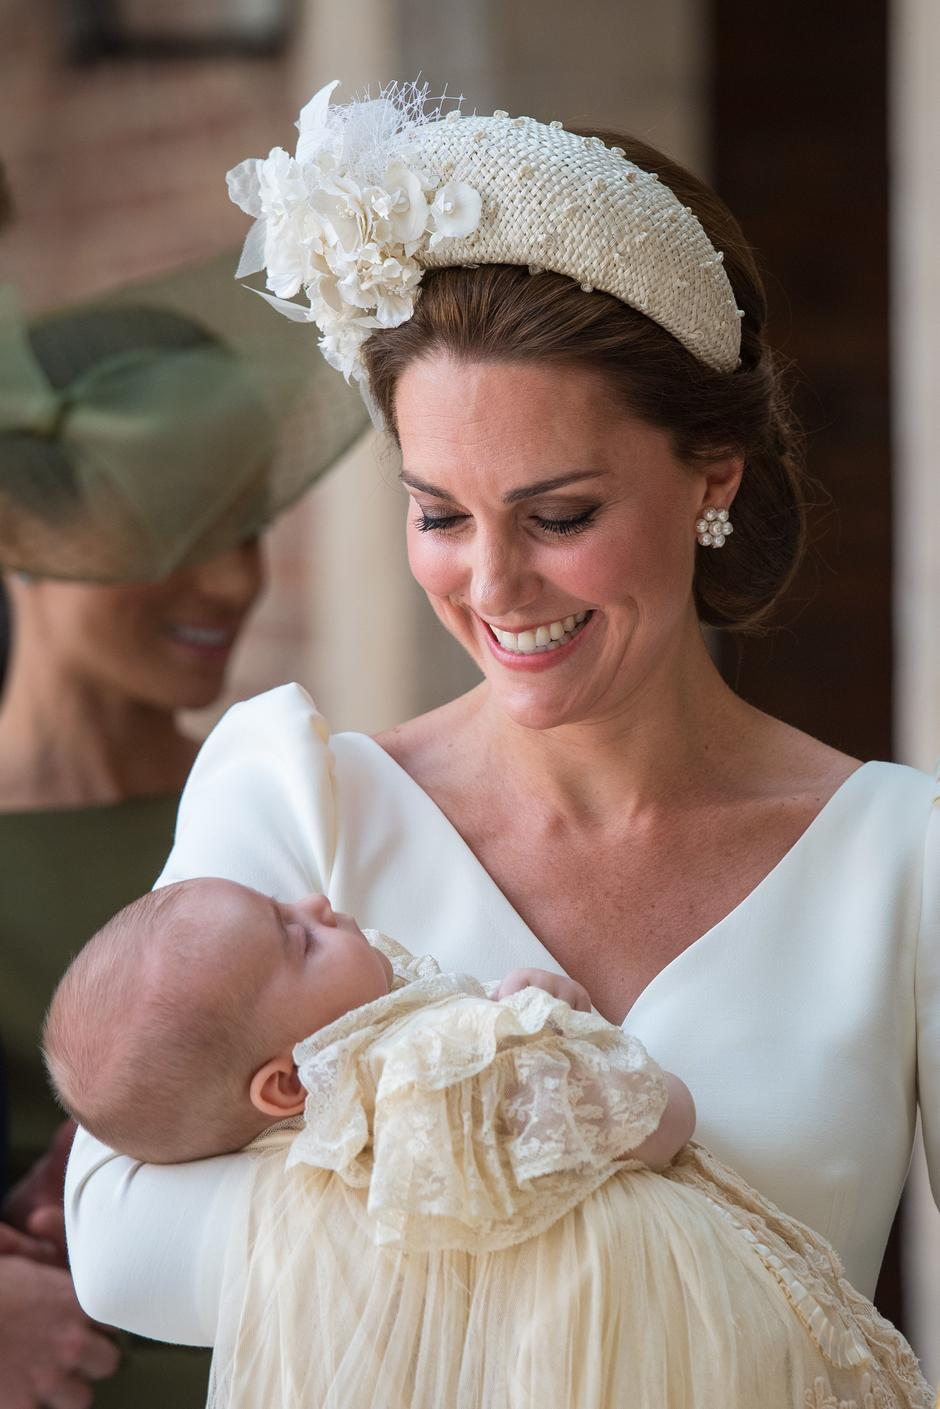 Prince Louis christening | Autor: Dominic Lipinski/Press Association/PIXSELL